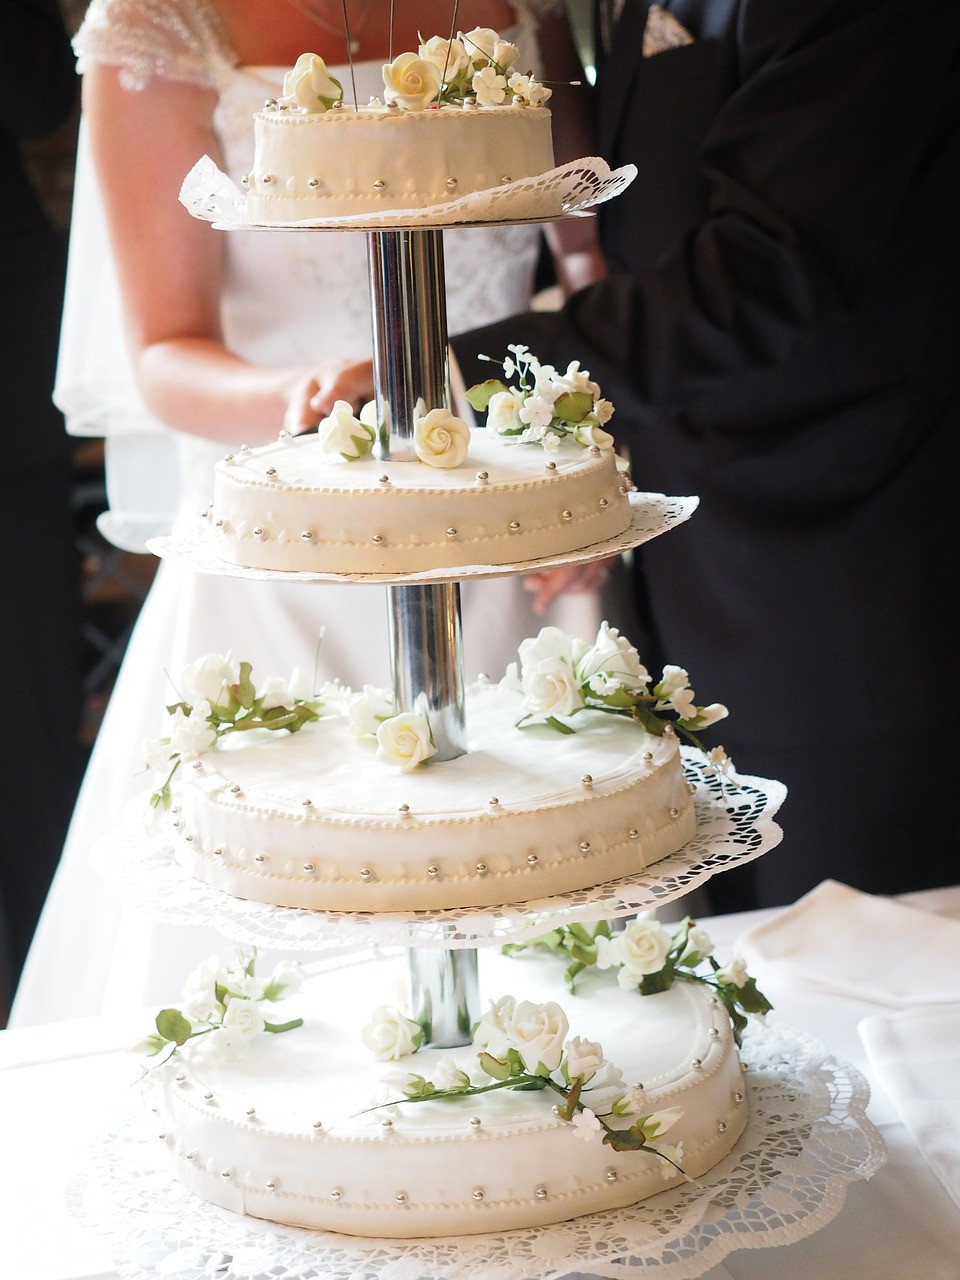 Expensive Wedding Cakes  Most Expensive Cakes in the World Insider Monkey